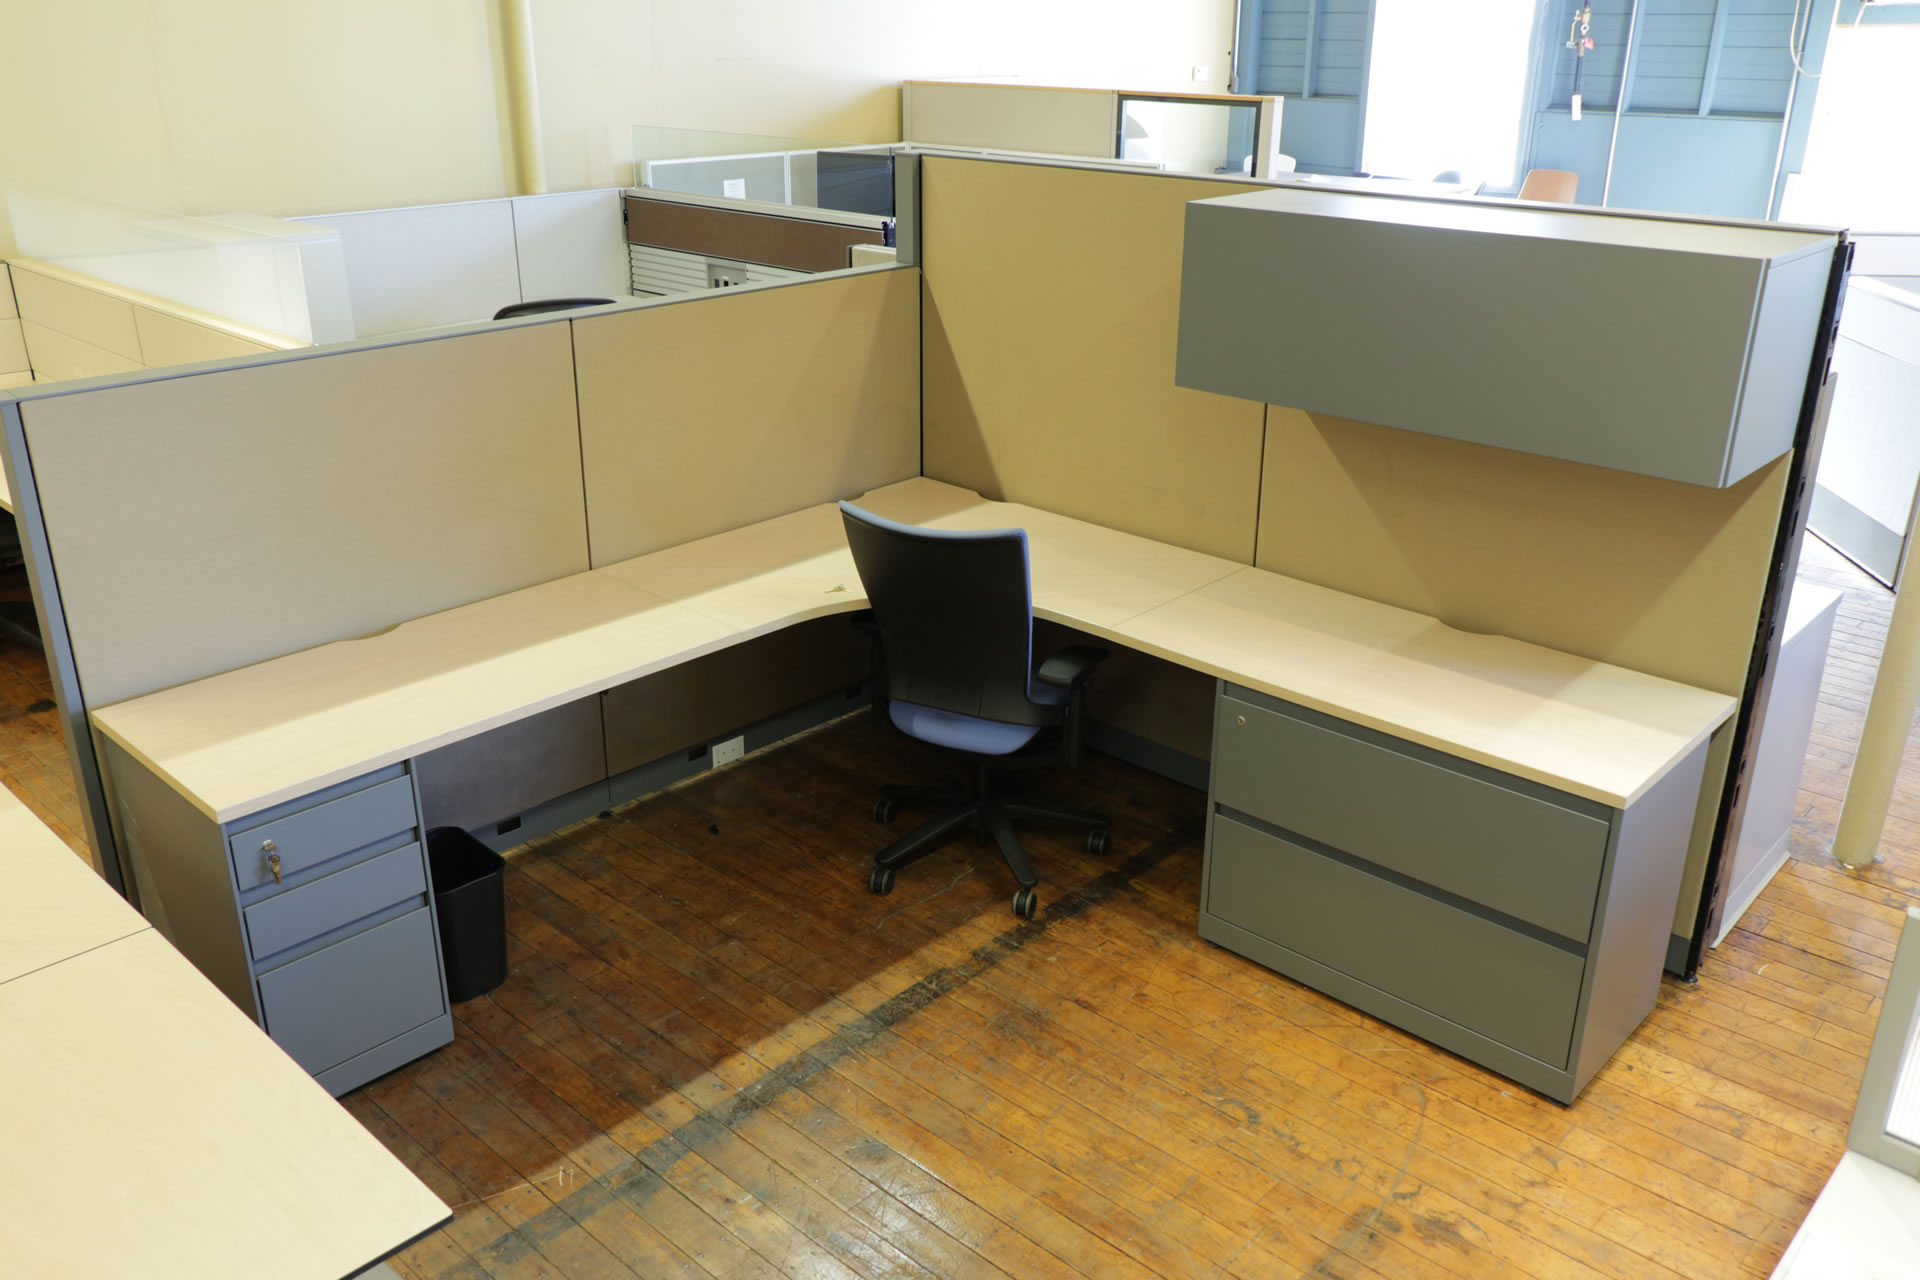 peartreeofficefurniture_peartreeofficefurniture_peartreeofficefurniture_img_9330.jpg